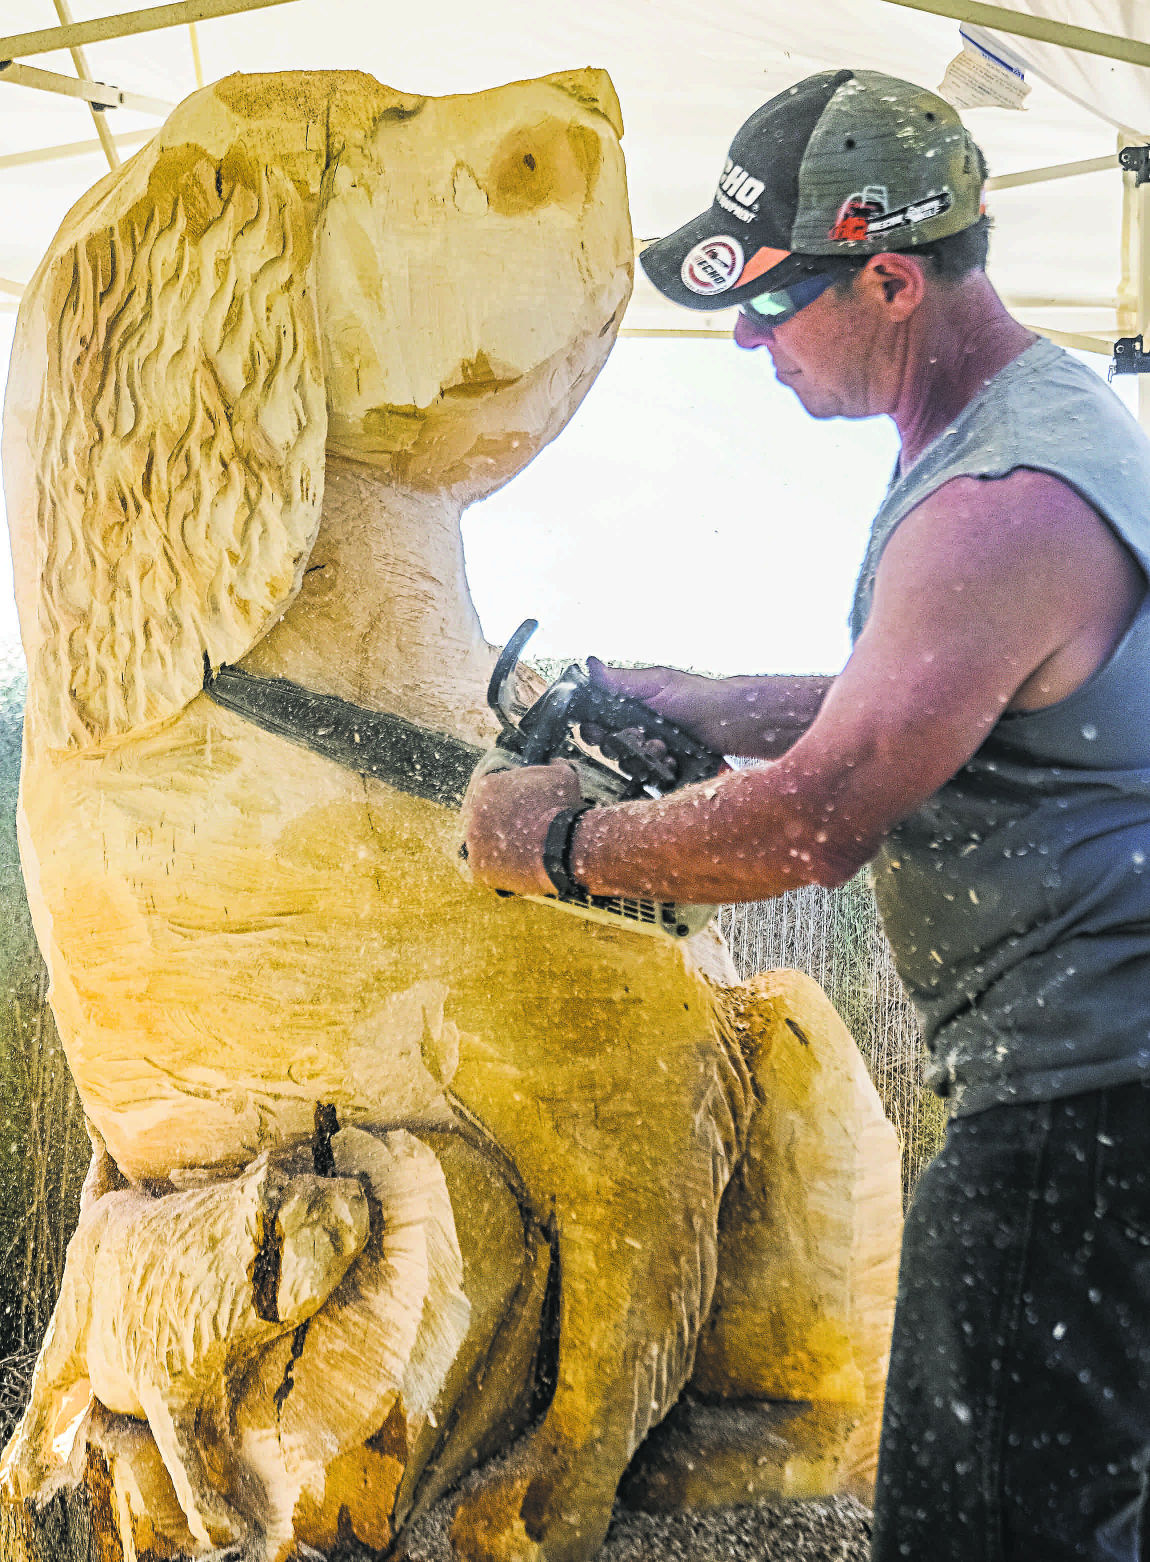 Roche park adds another wooden creature with chainsaw